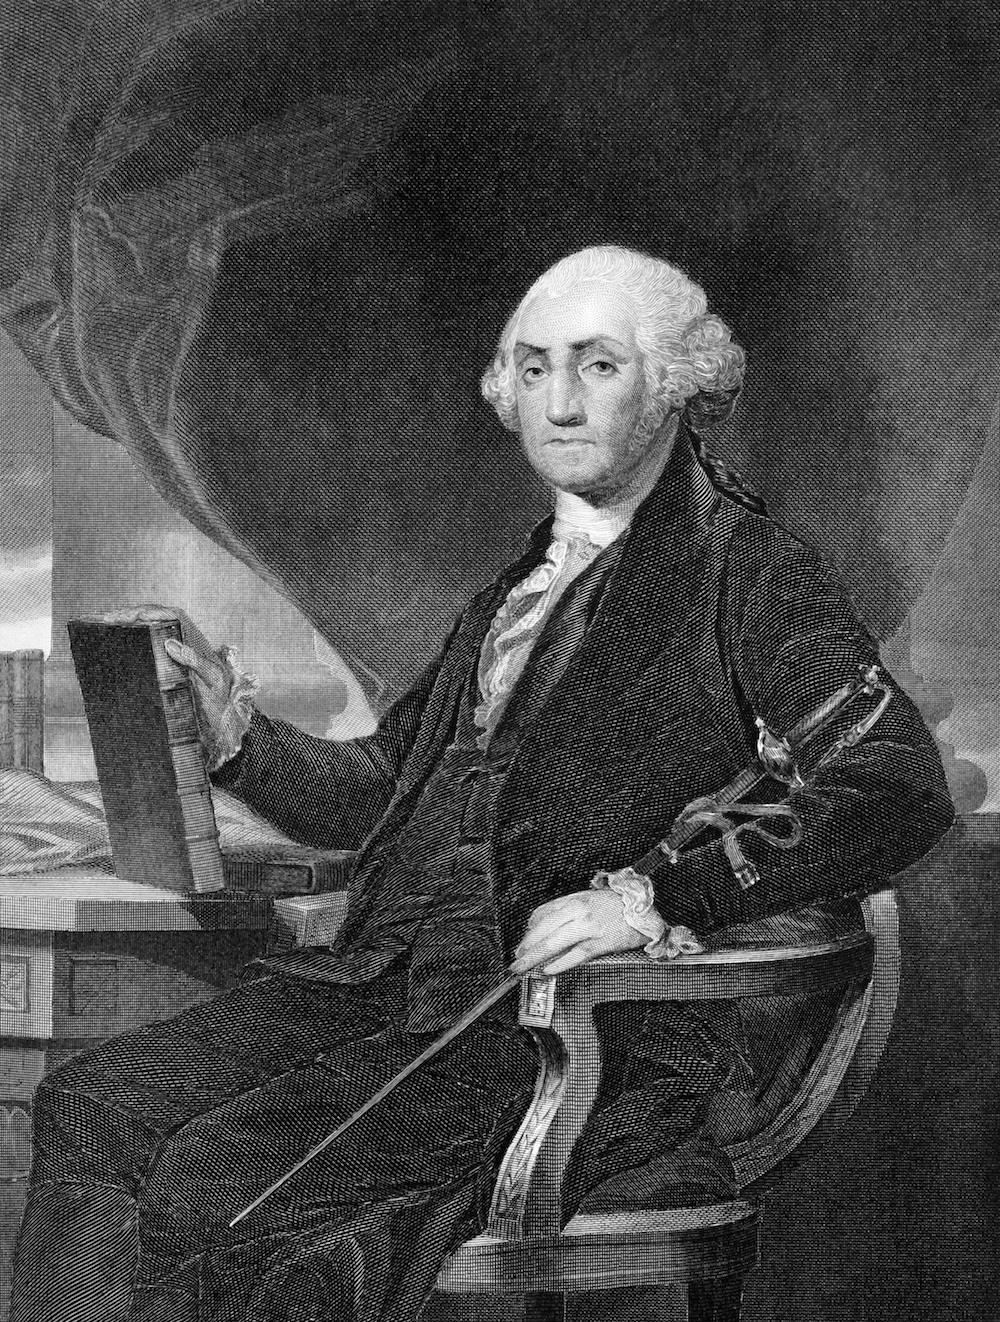 George Washington (1731-1799) on engraving from 1859